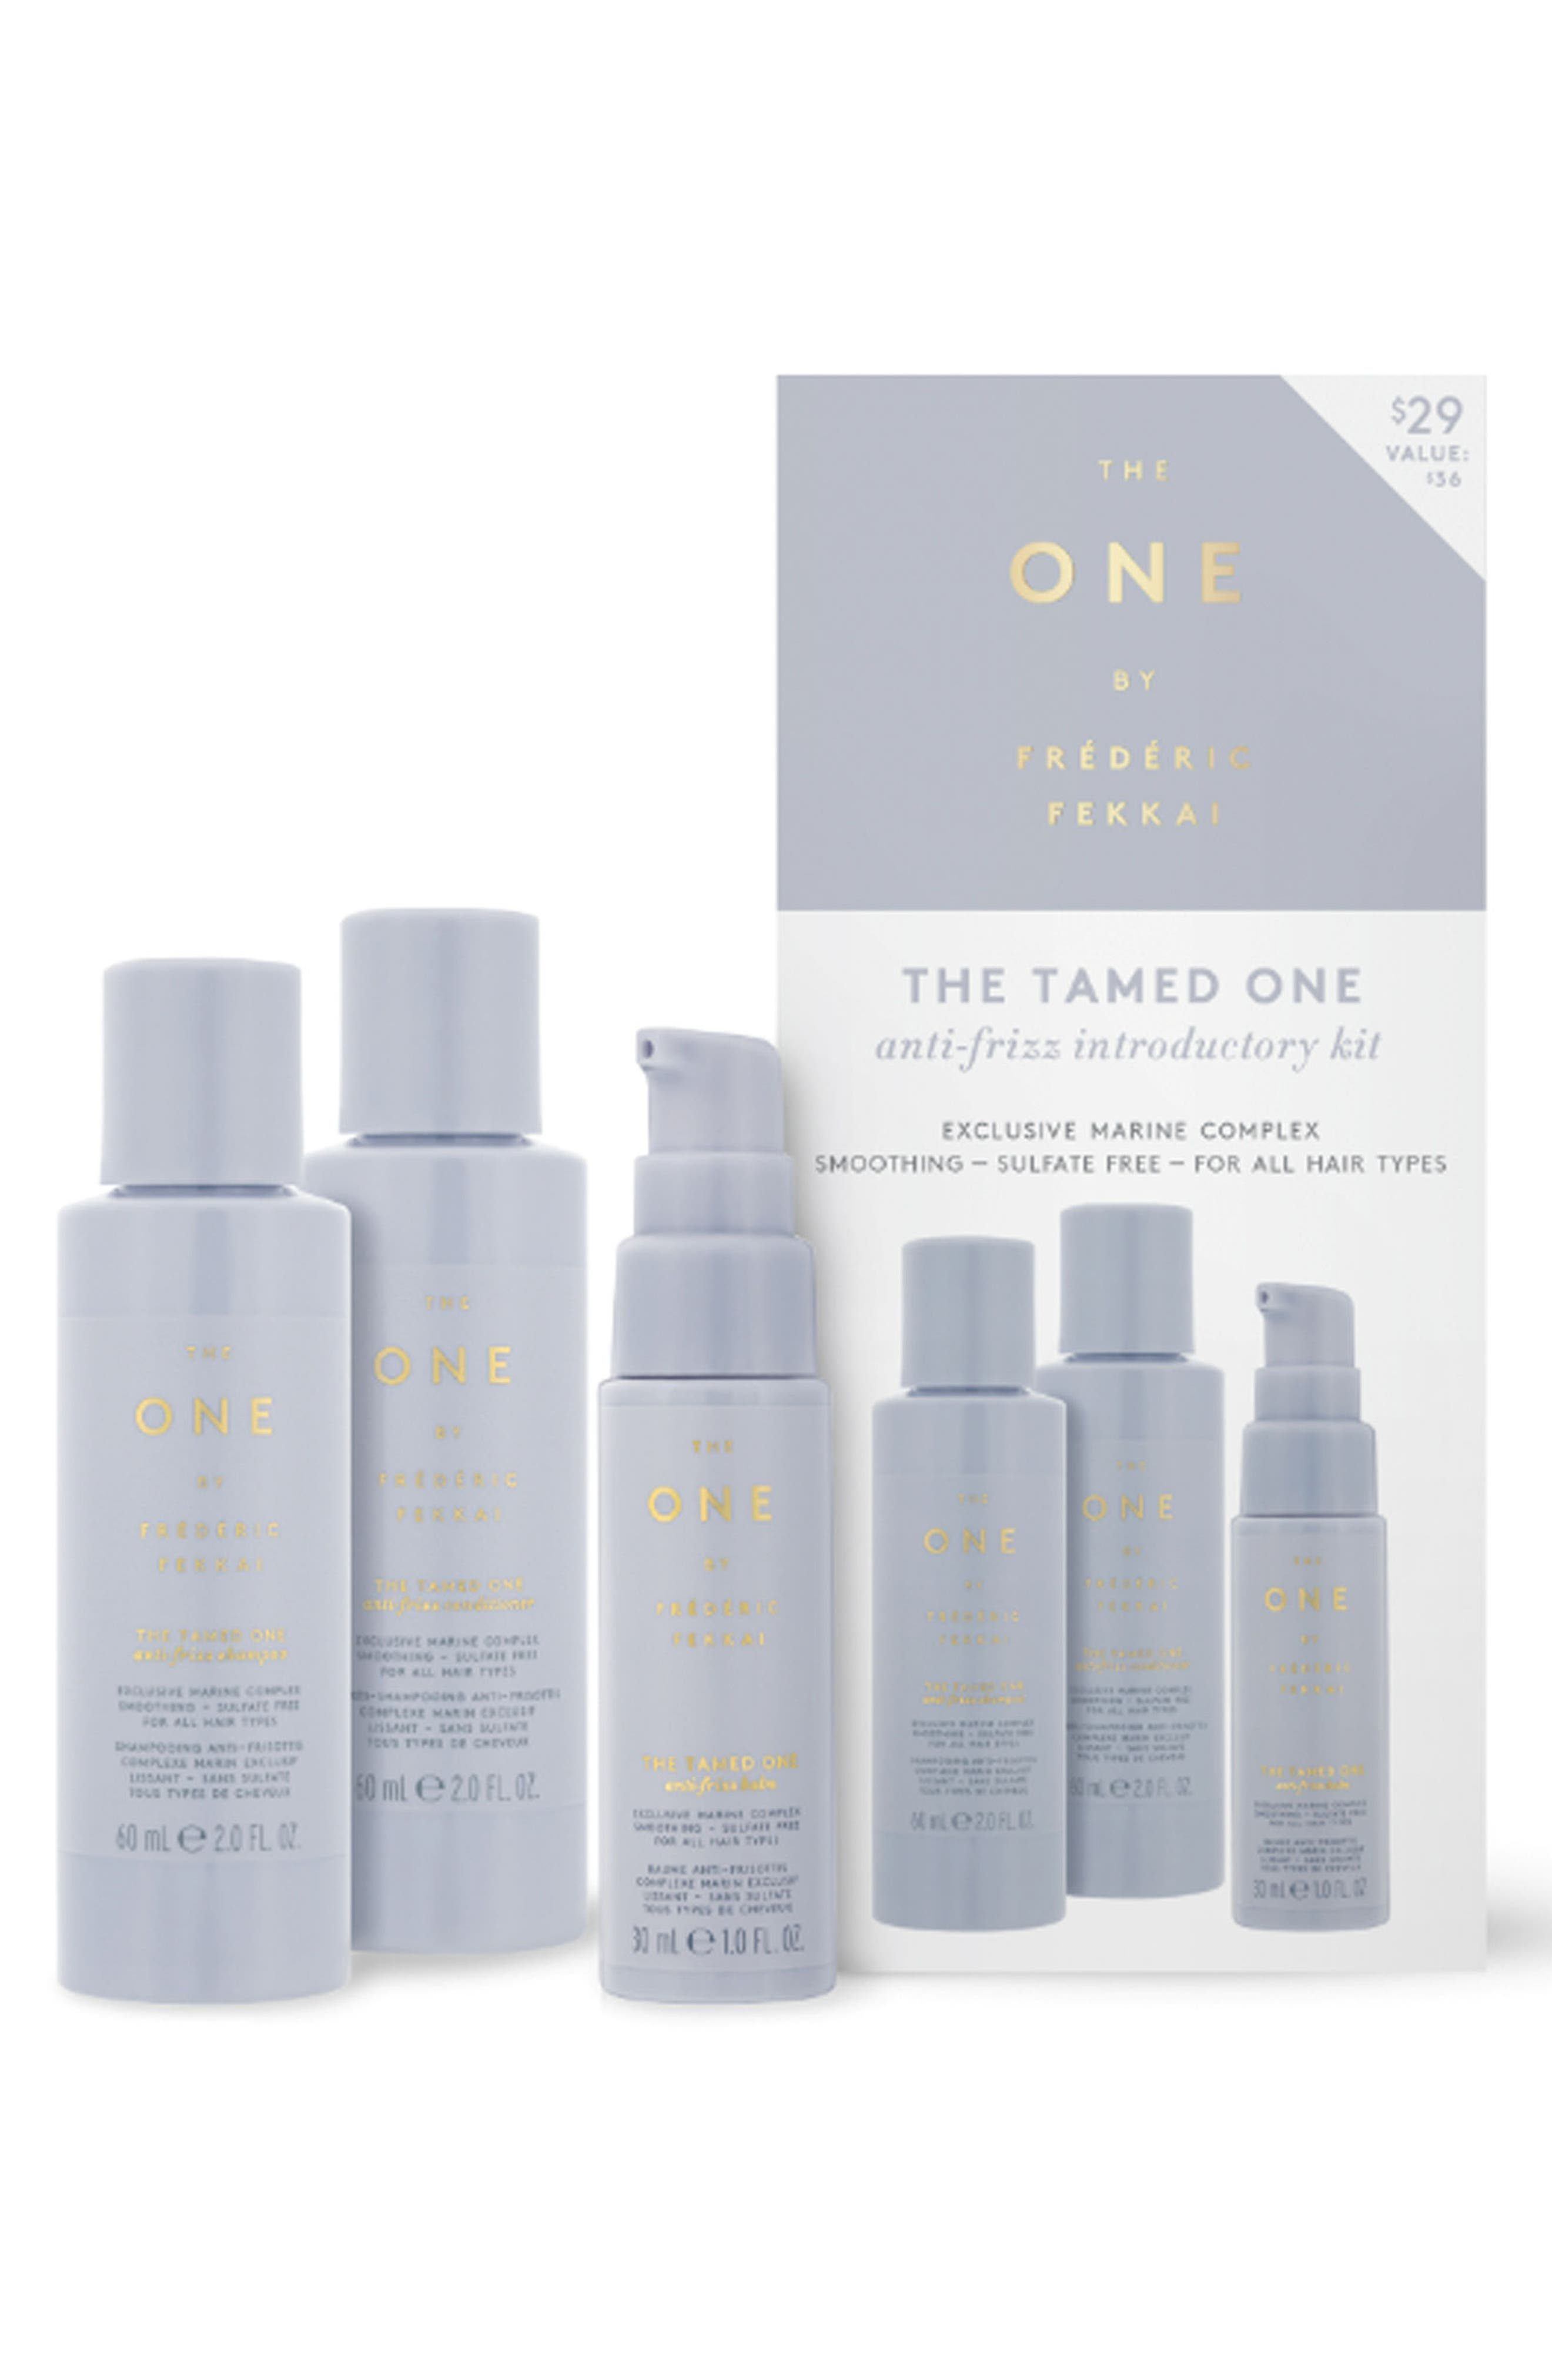 The One by Frédéric Fekkai The Tamed One Anti-Frizz Introductory Kit,                             Main thumbnail 1, color,                             NO COLOR